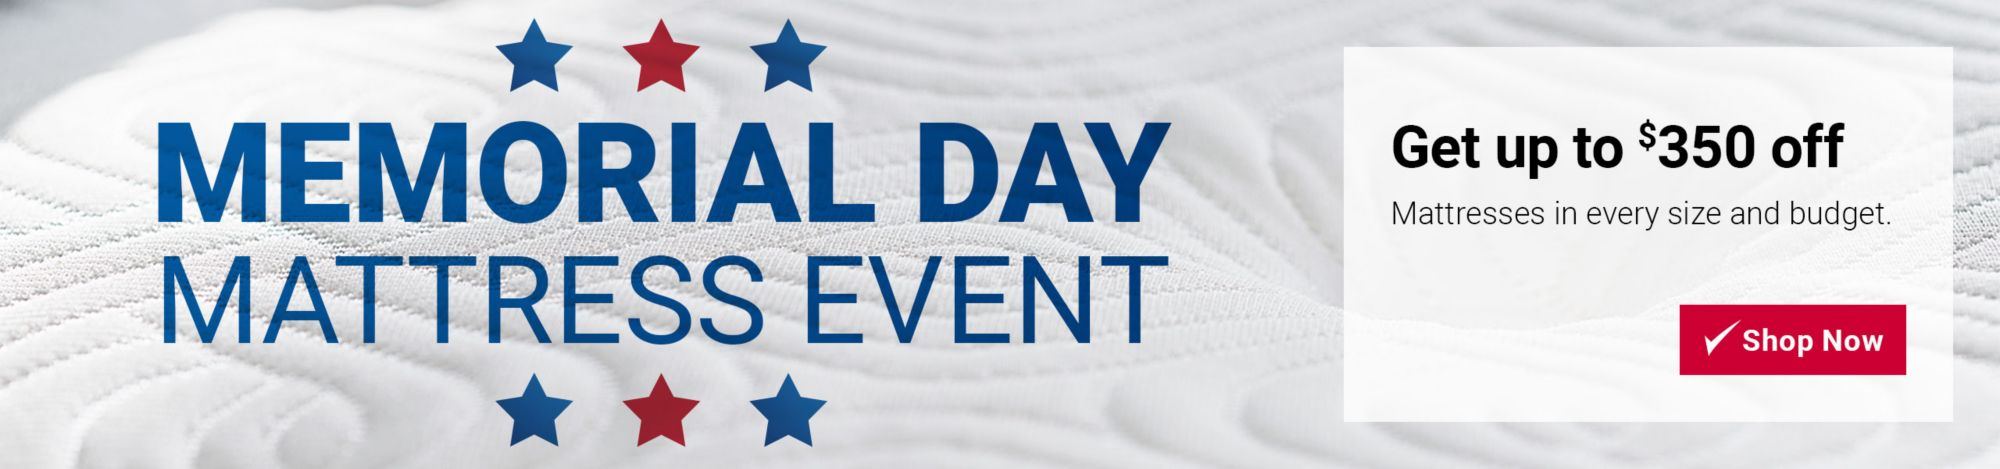 Memorial Day Mattress Event. Get up to $350 off mattresses in every size and budget.